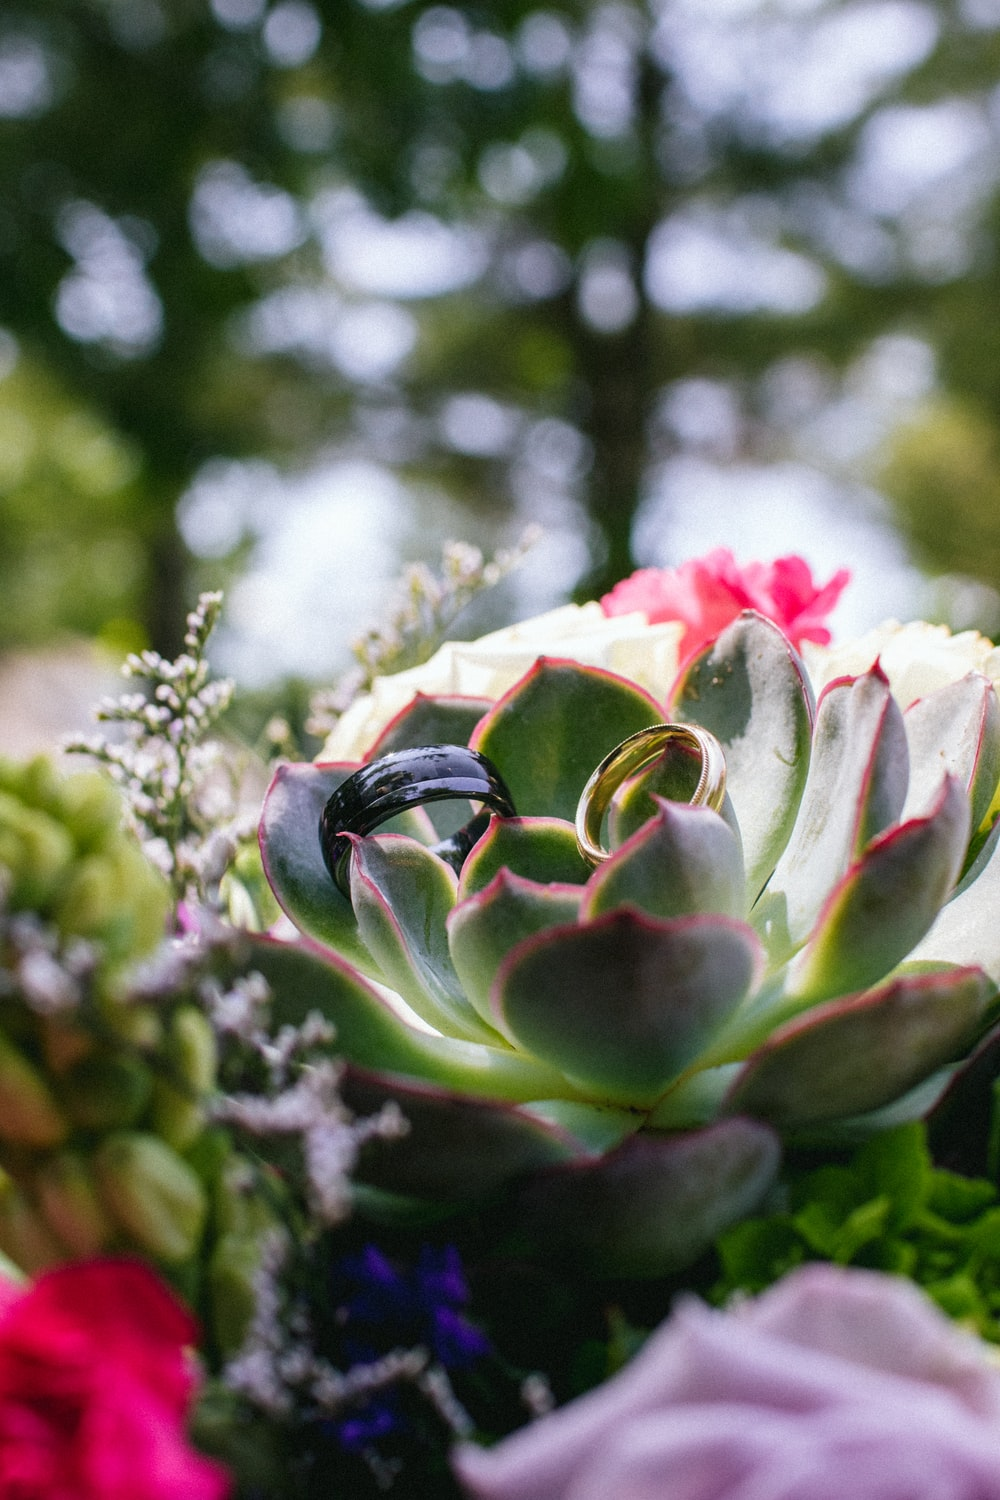 green and pink flower bud in tilt shift lens